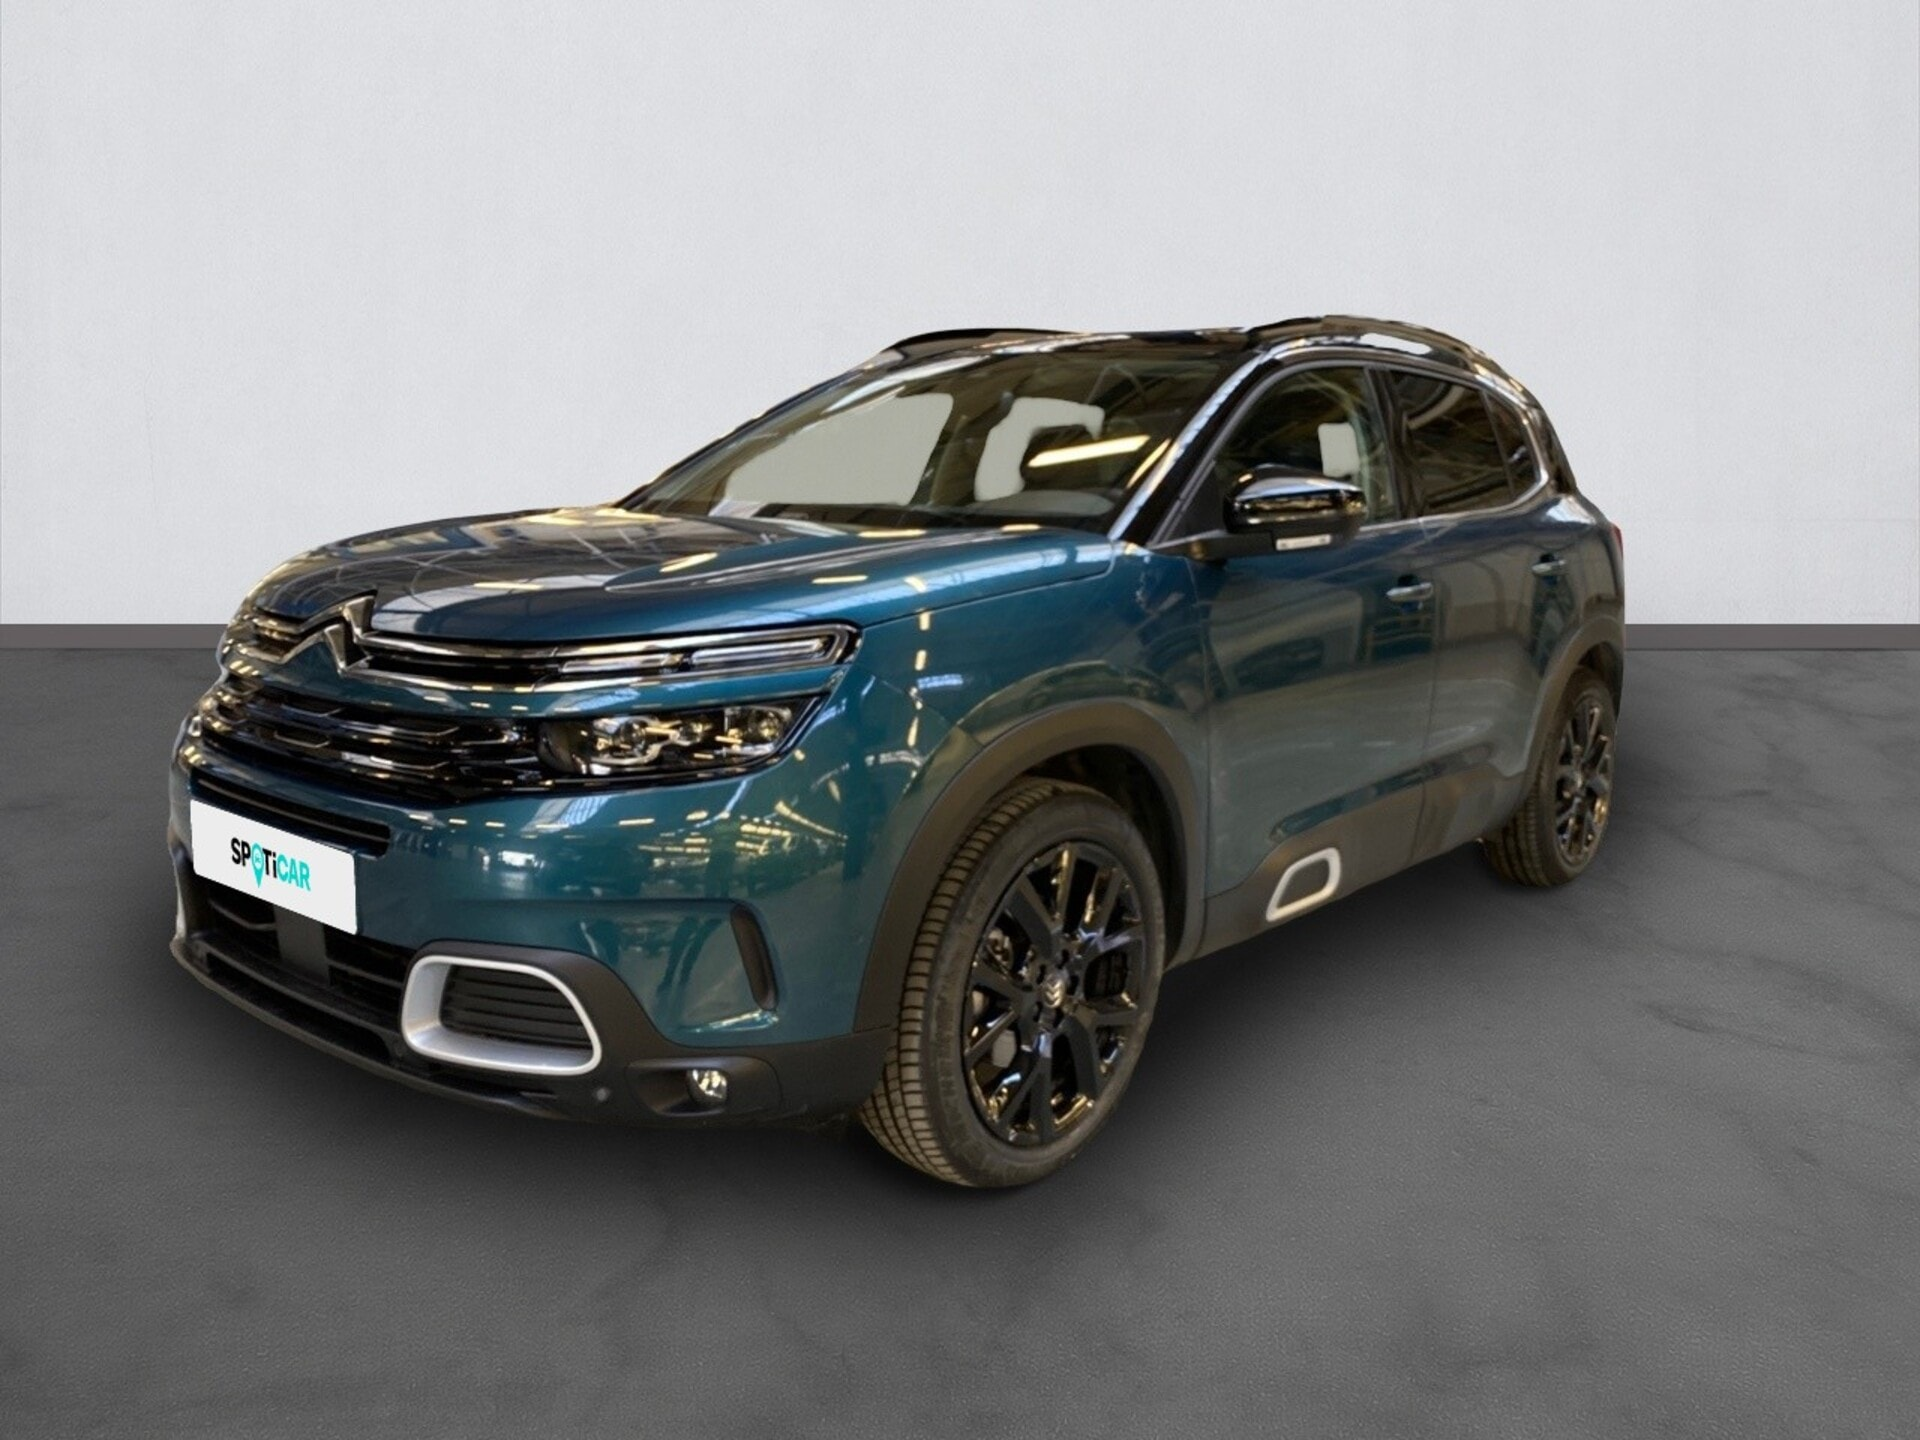 CITROEN C5 AIRCROSS BLUEHDI 180 S&S EAT8 SHINE - Carventura